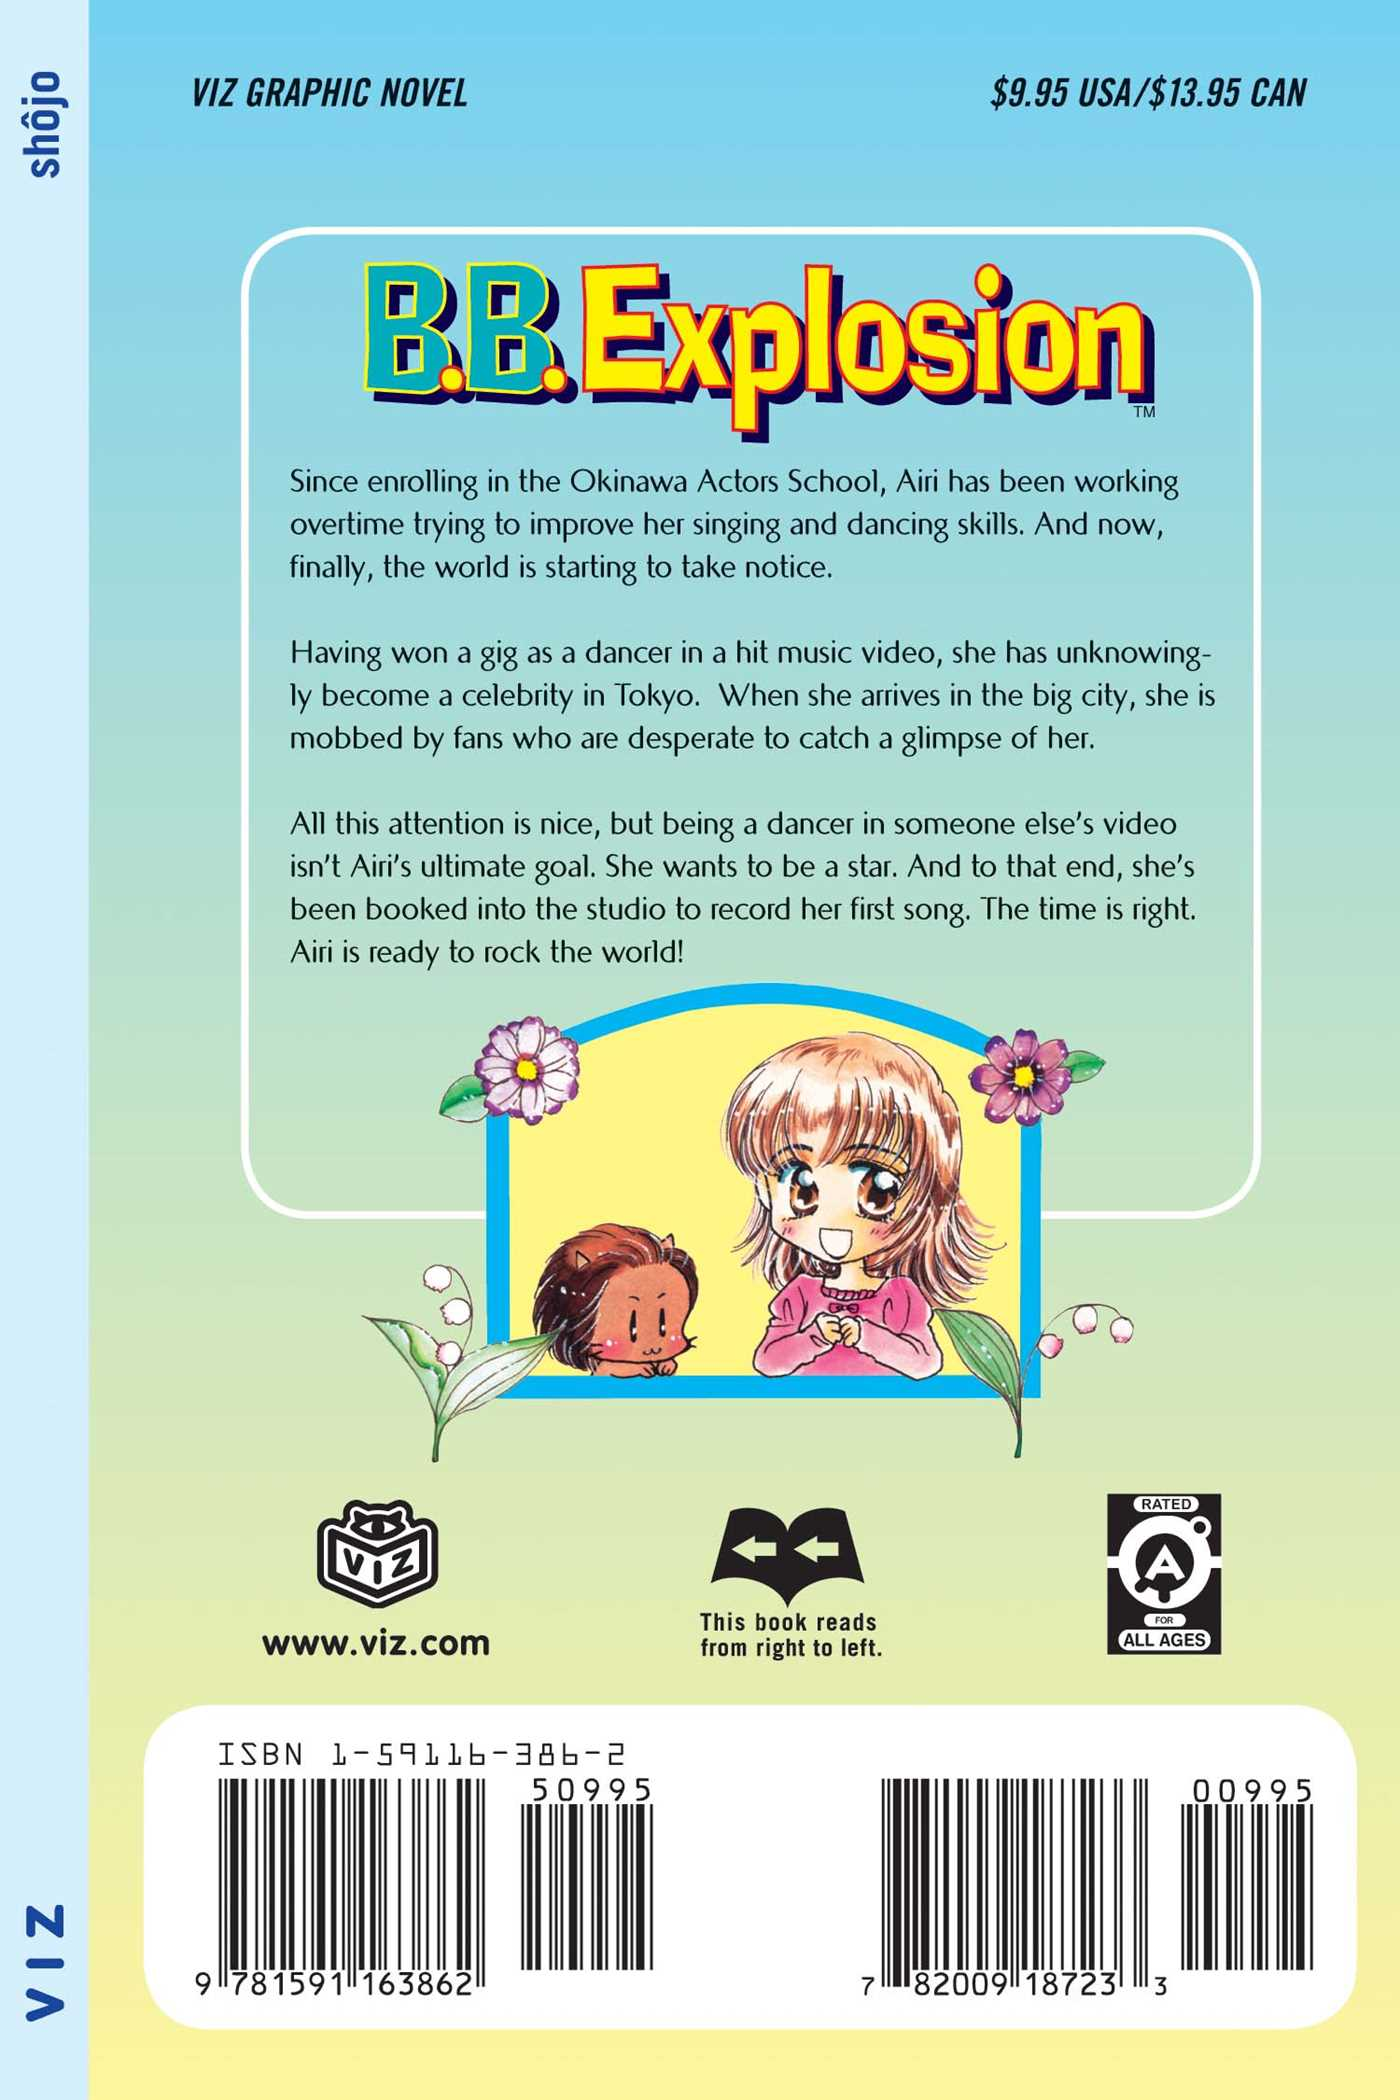 B-b-explosion-vol-3-9781591163862_hr-back